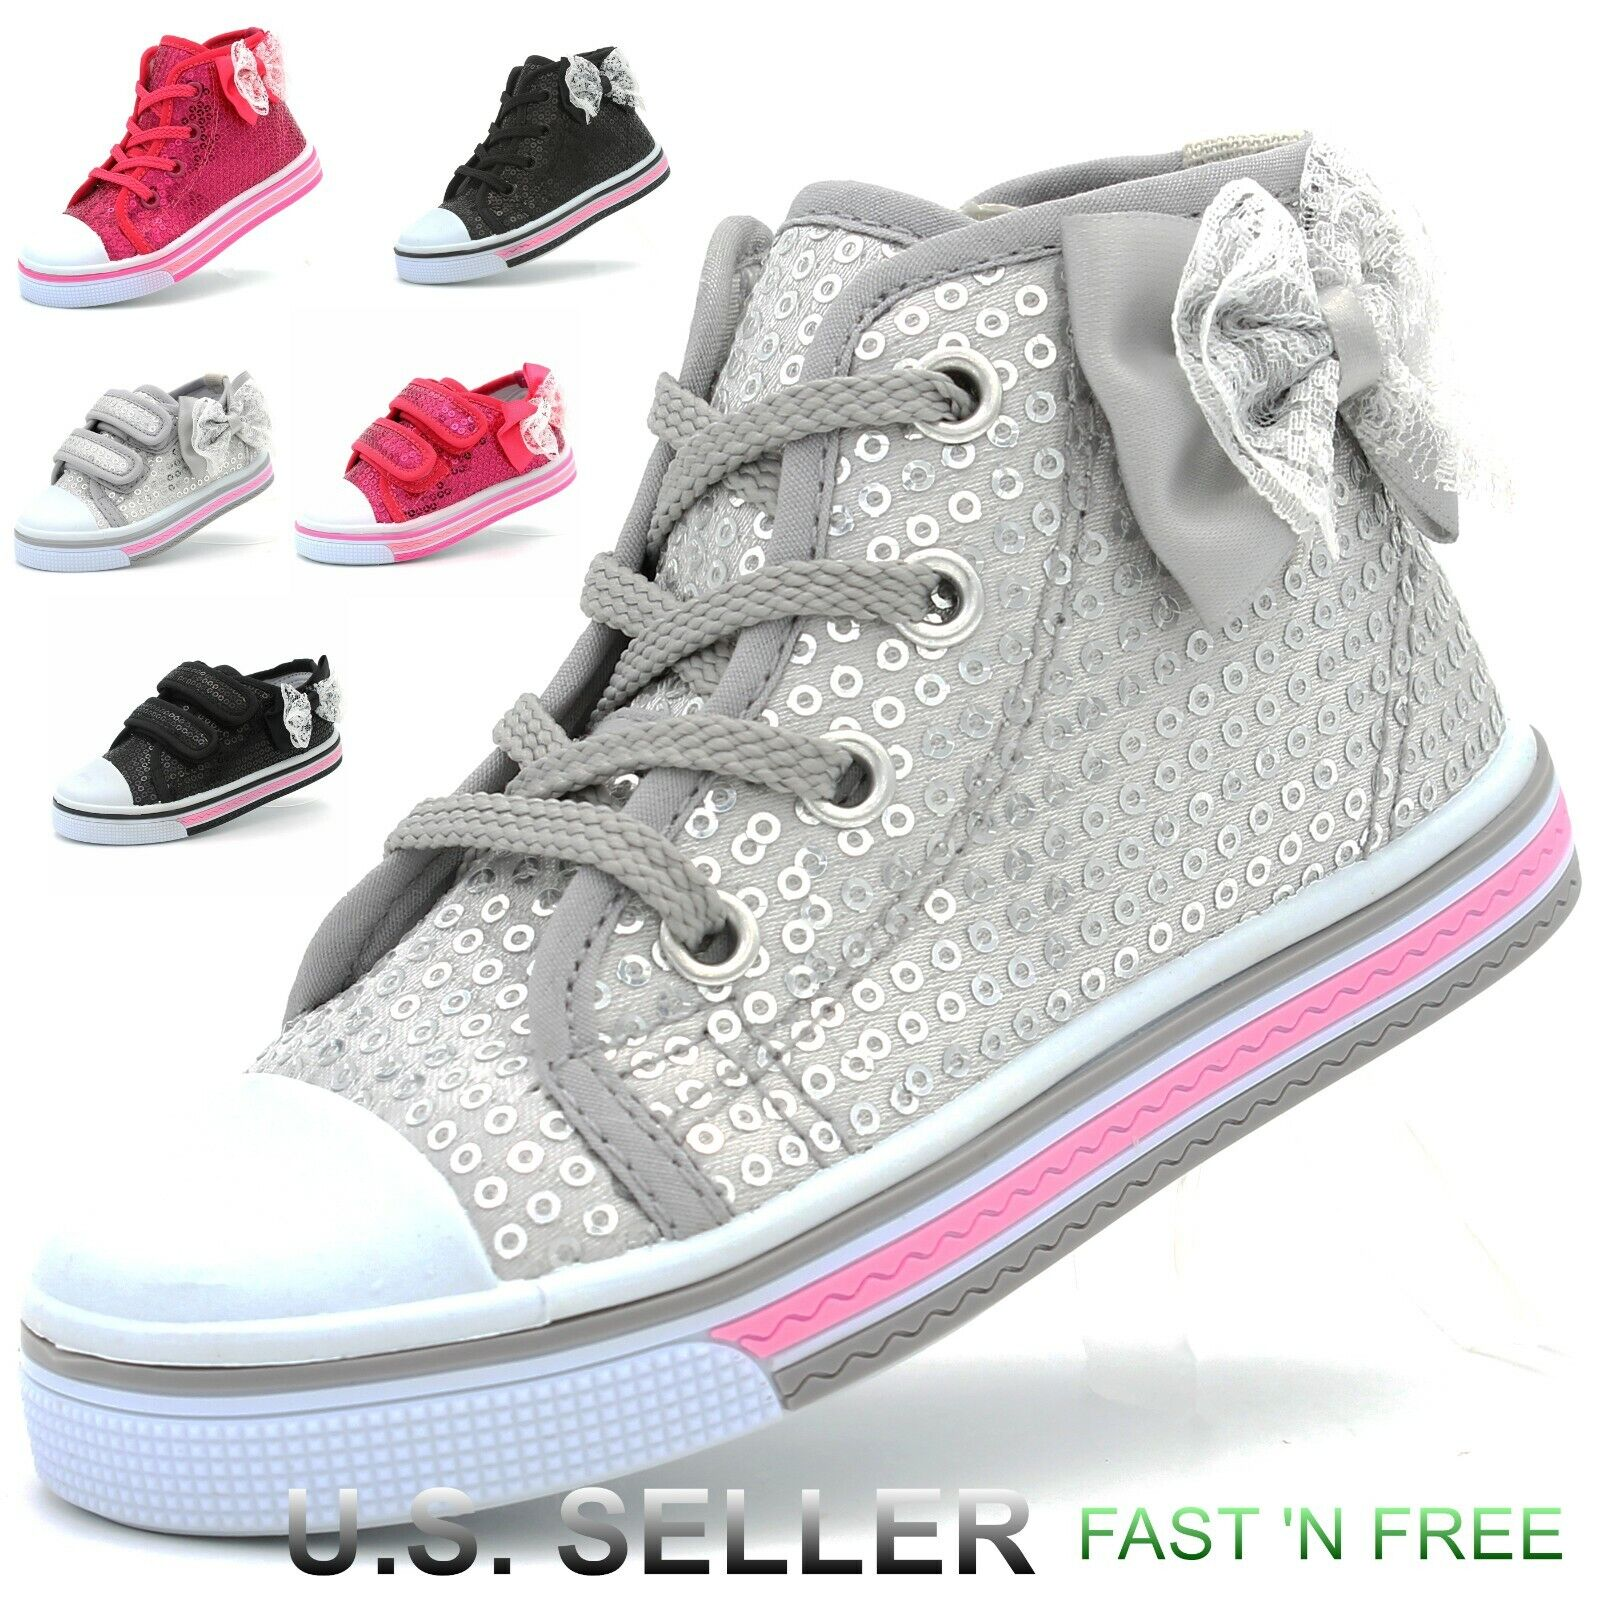 Girls Toddler Canvas Shoes Sneaker Strap Little Kid Baby Flo